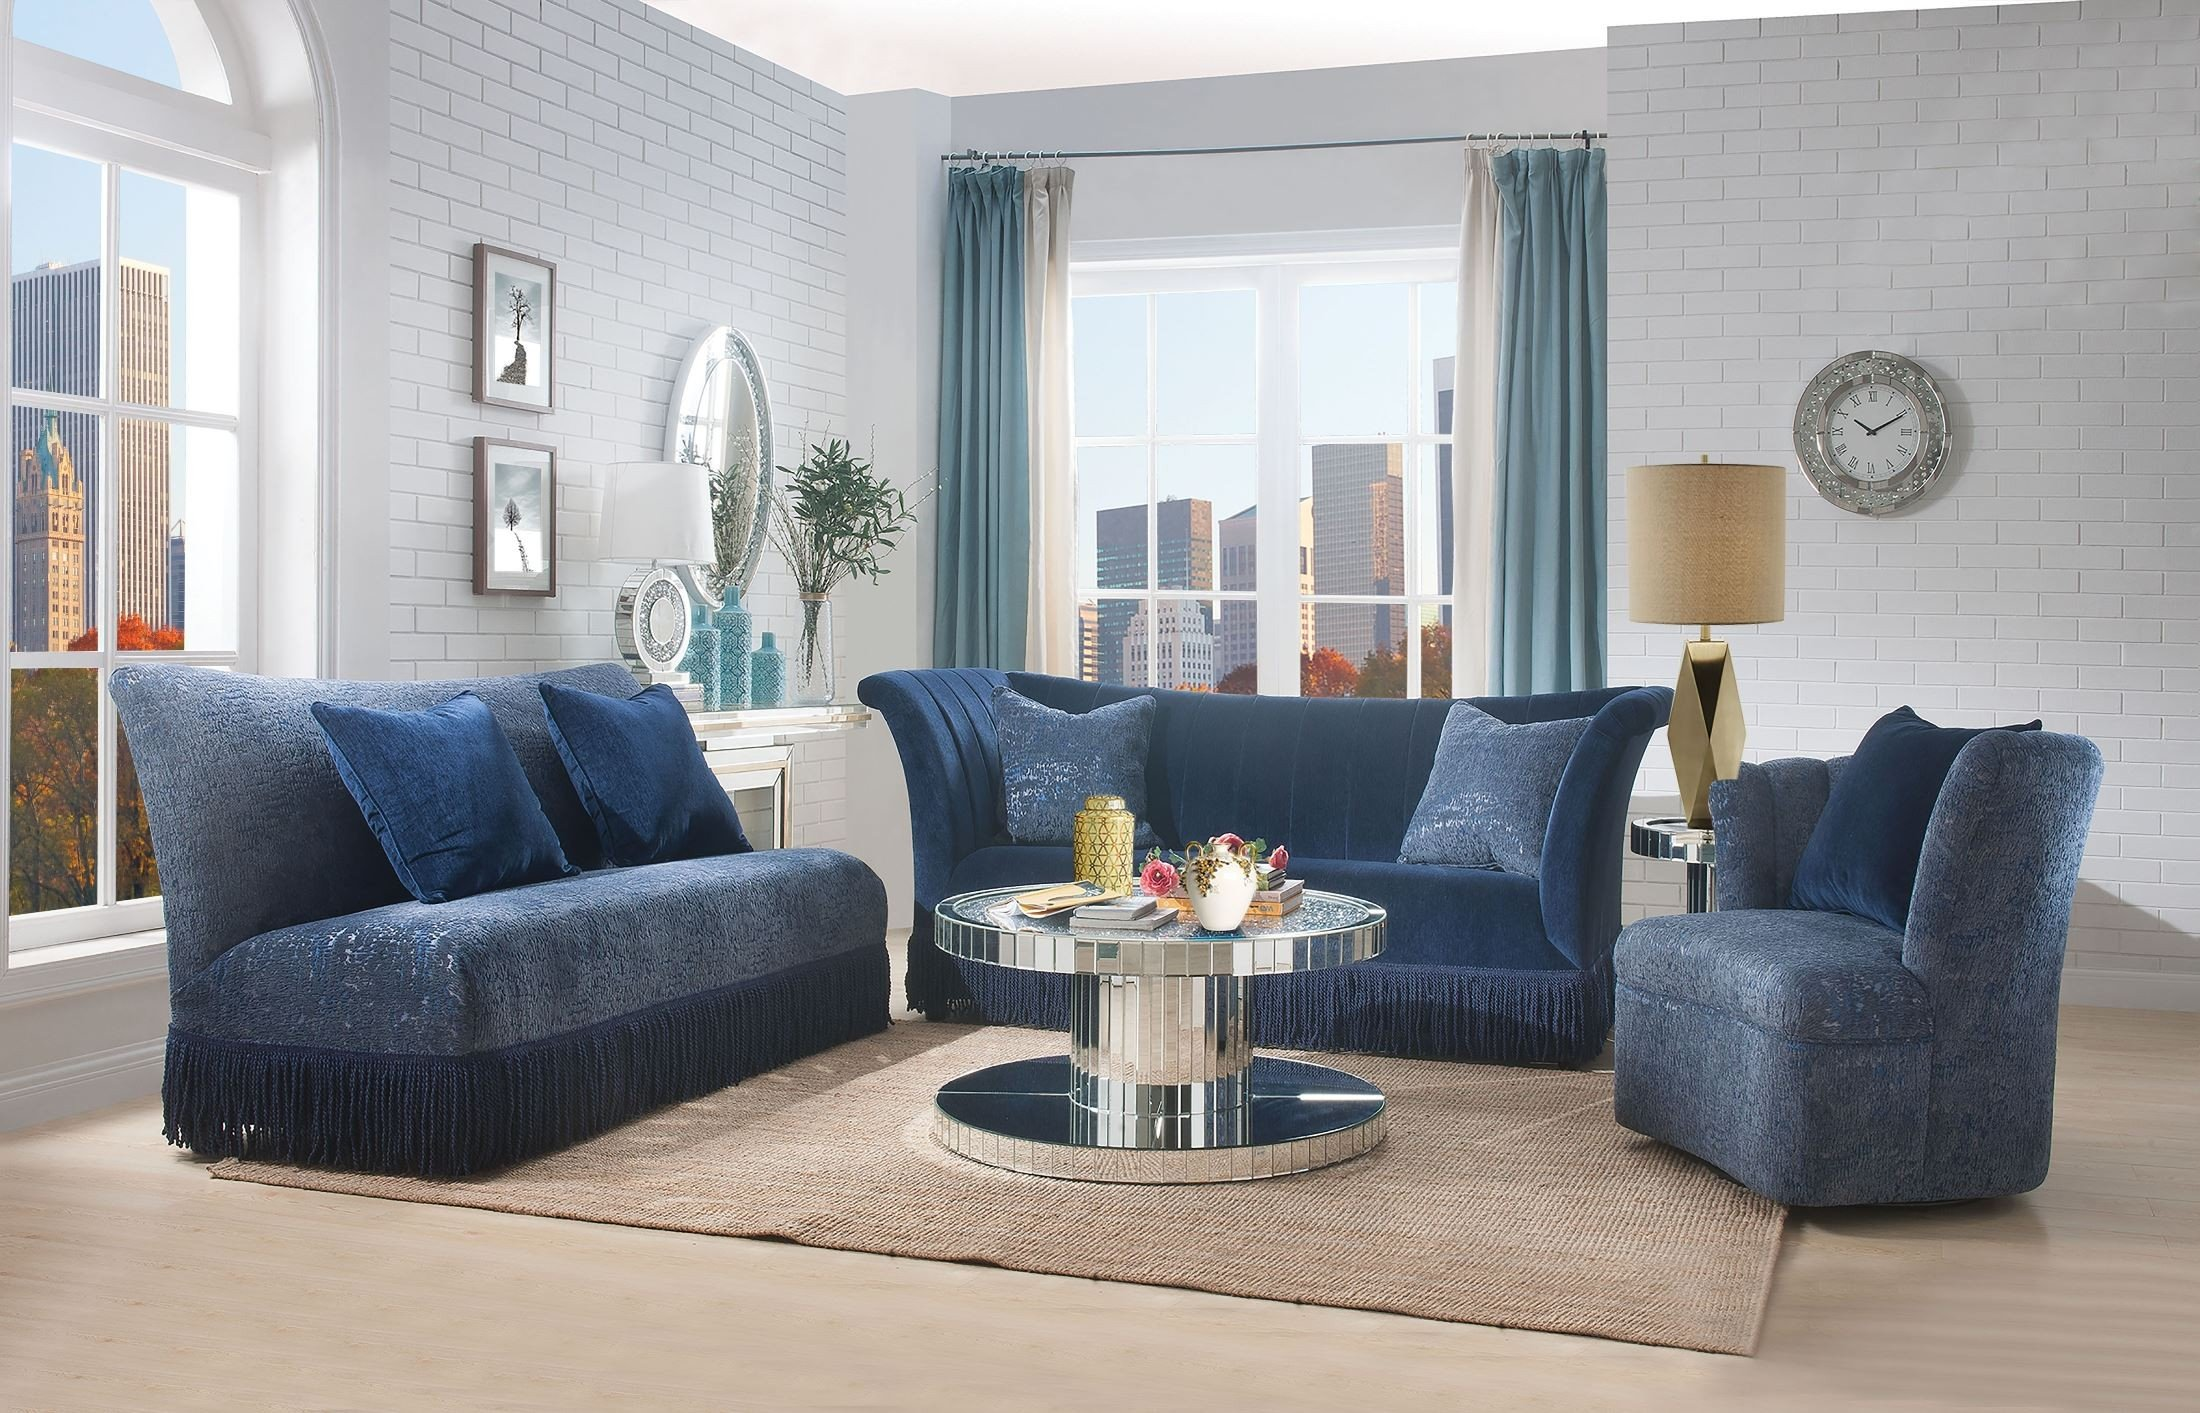 Ordinaire Kaffir Blue Living Room Set